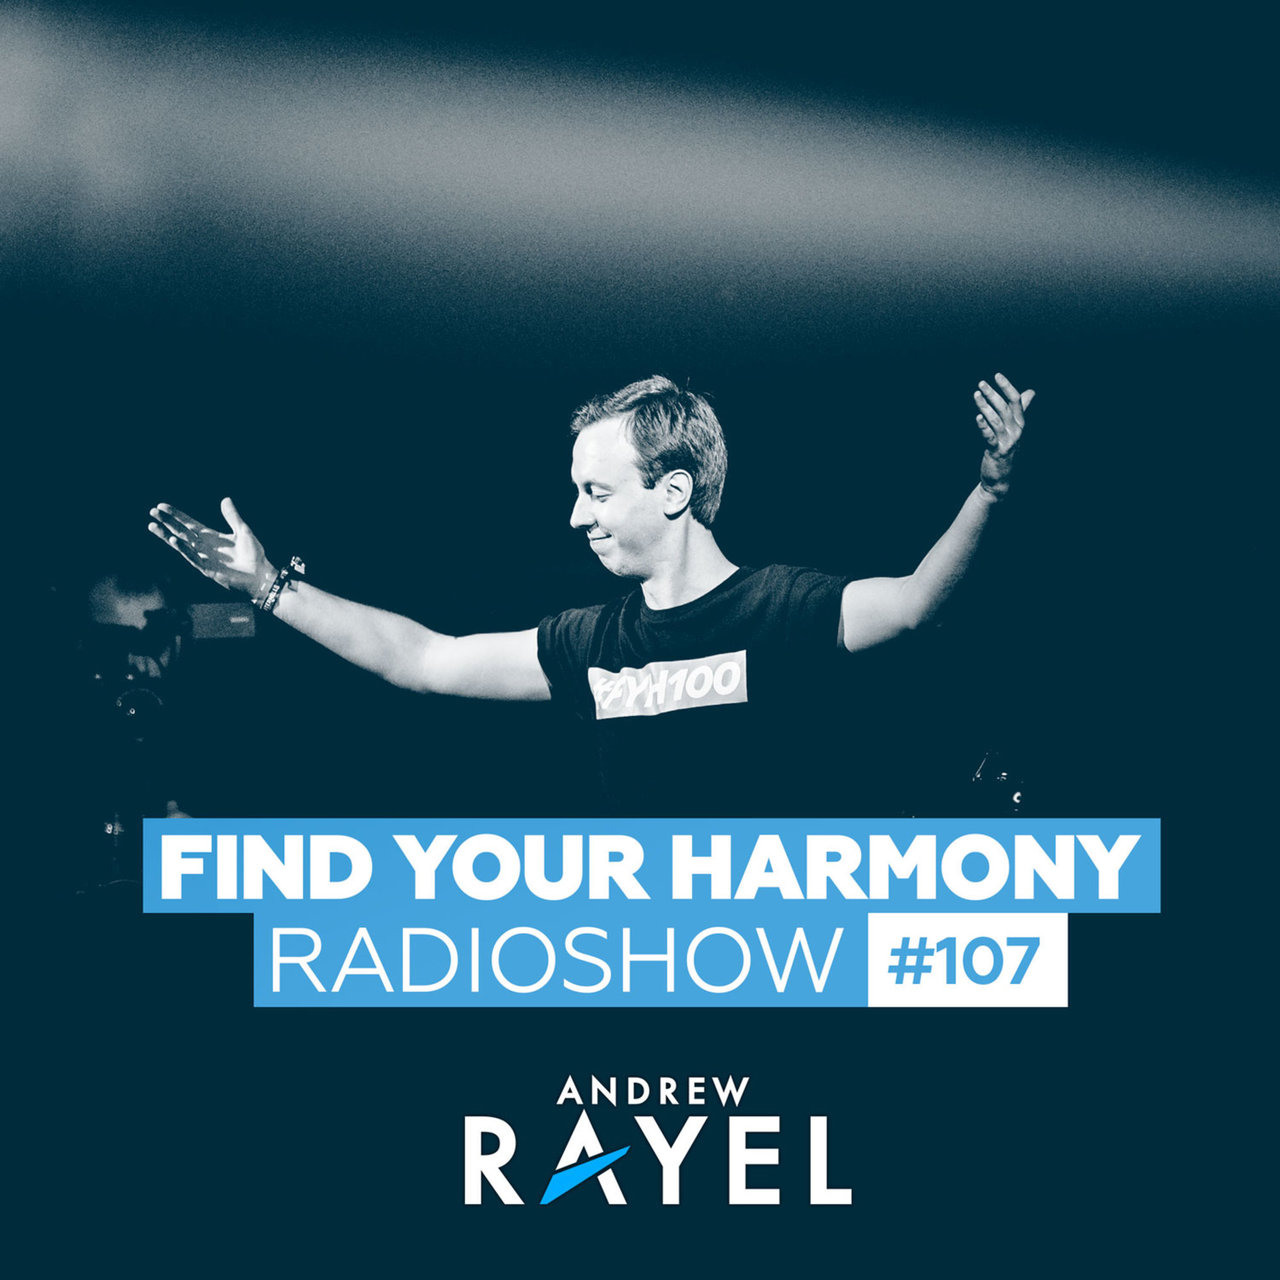 Find Your Harmony Radioshow #107